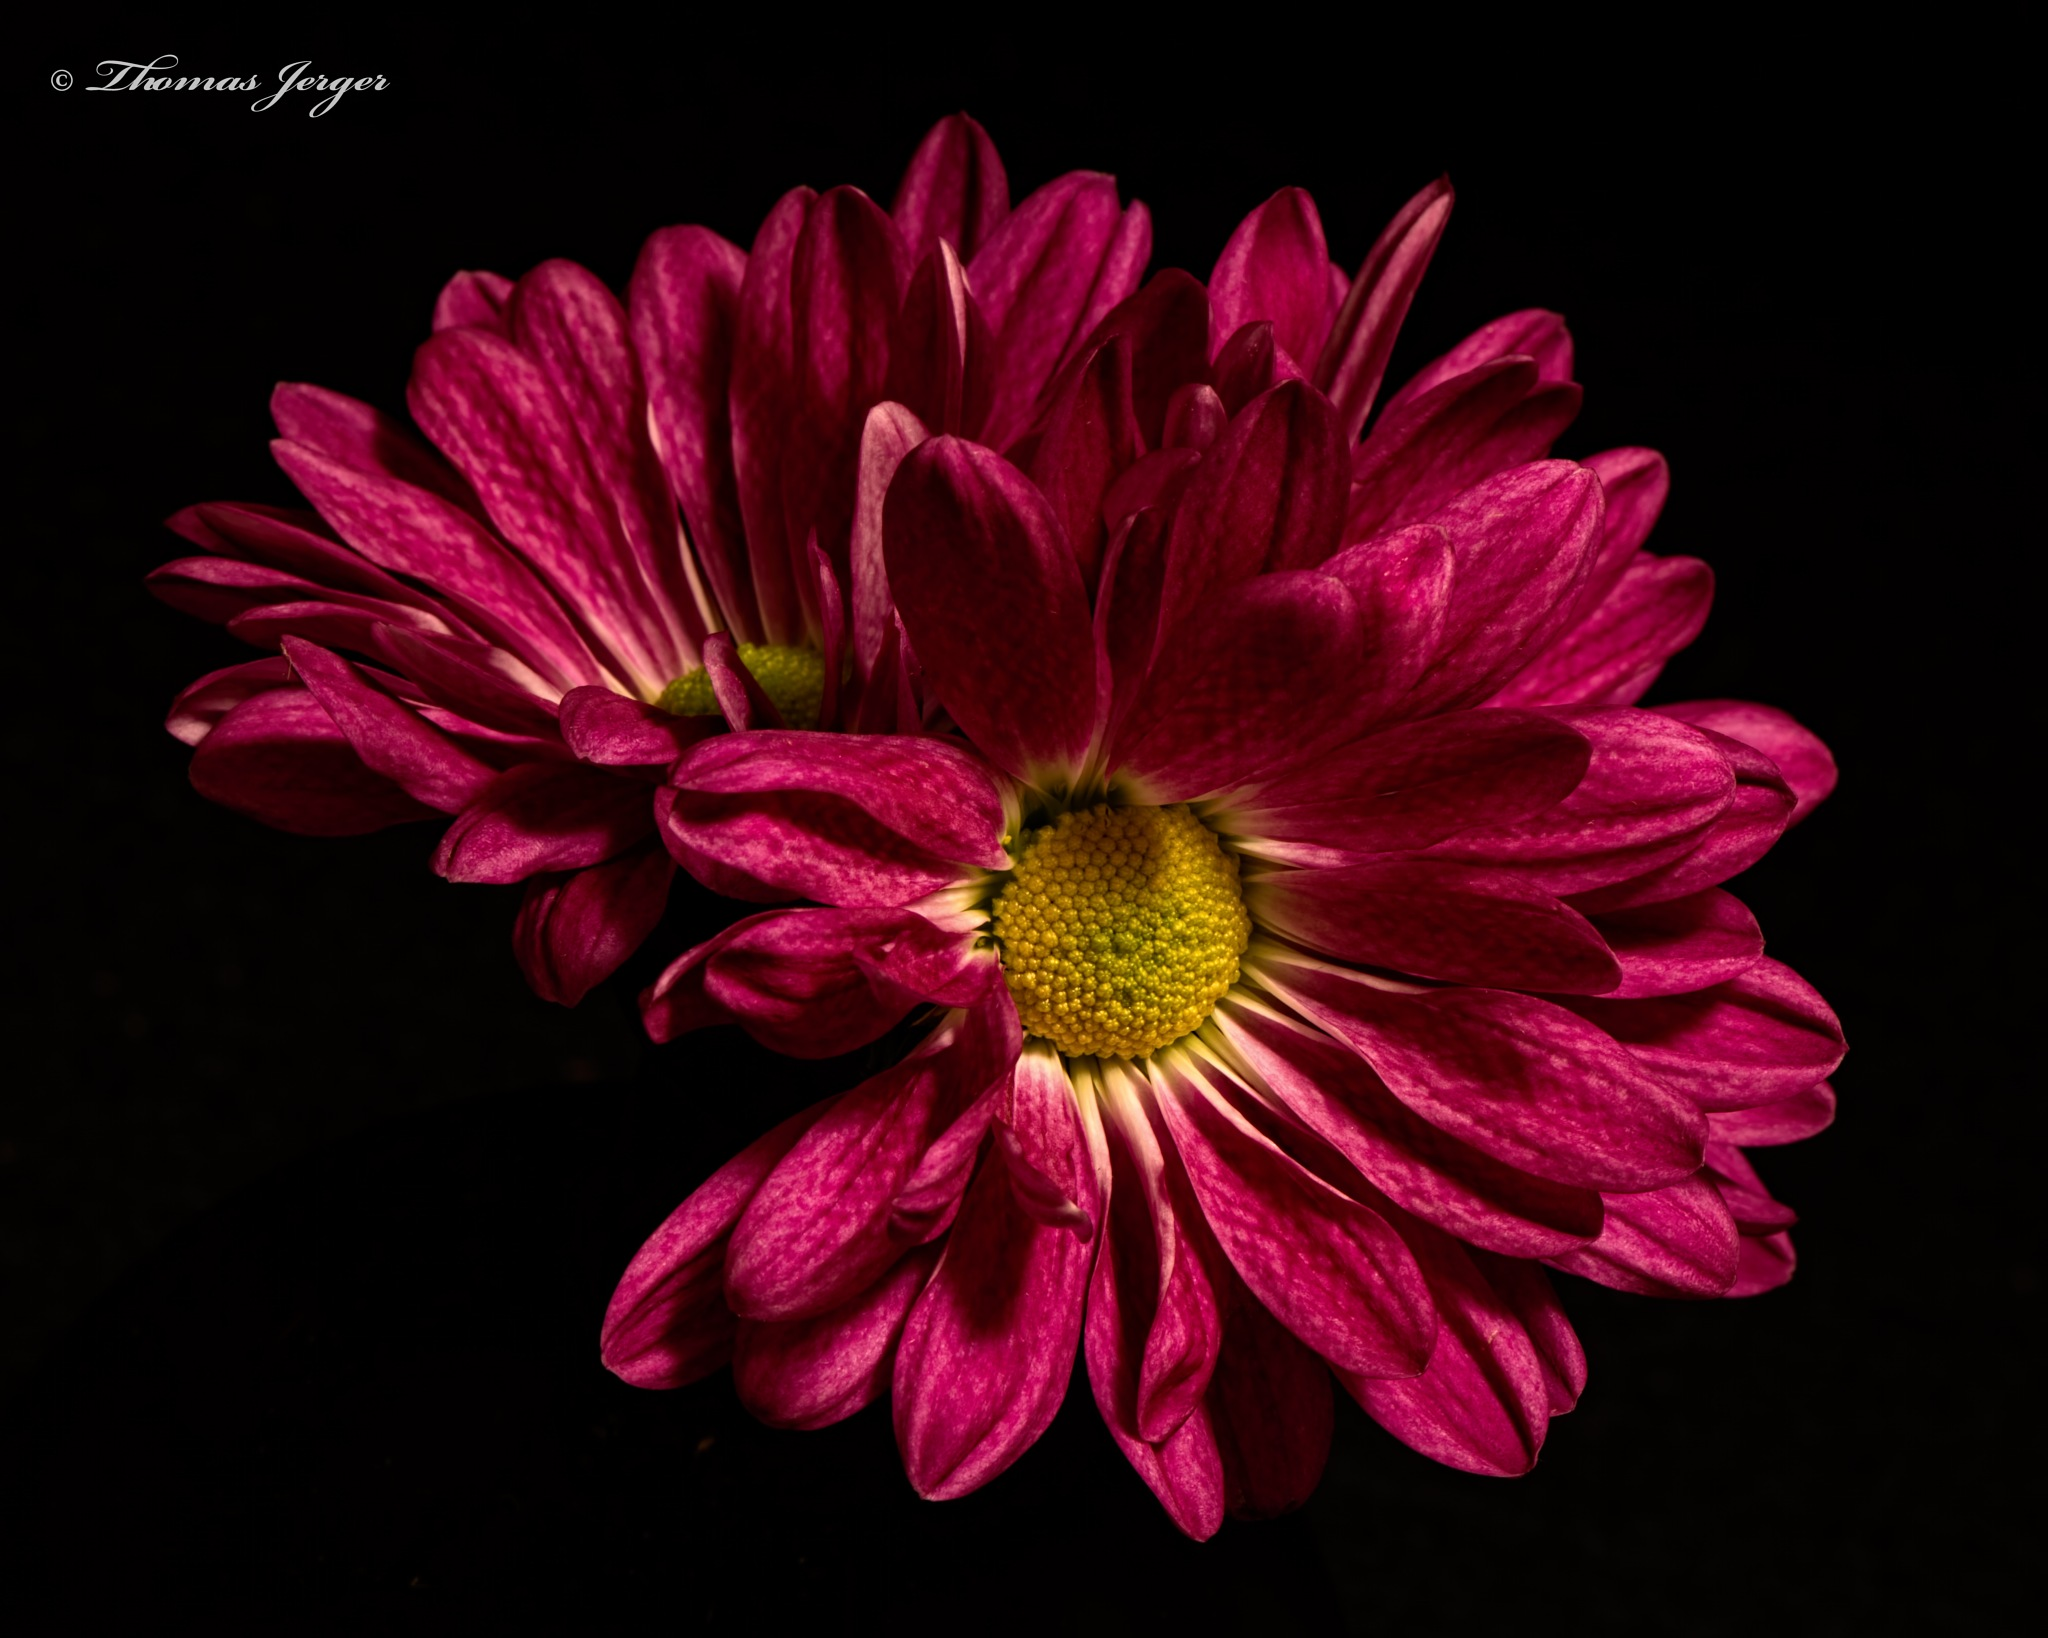 Red Mums 0930 by ThomasJerger